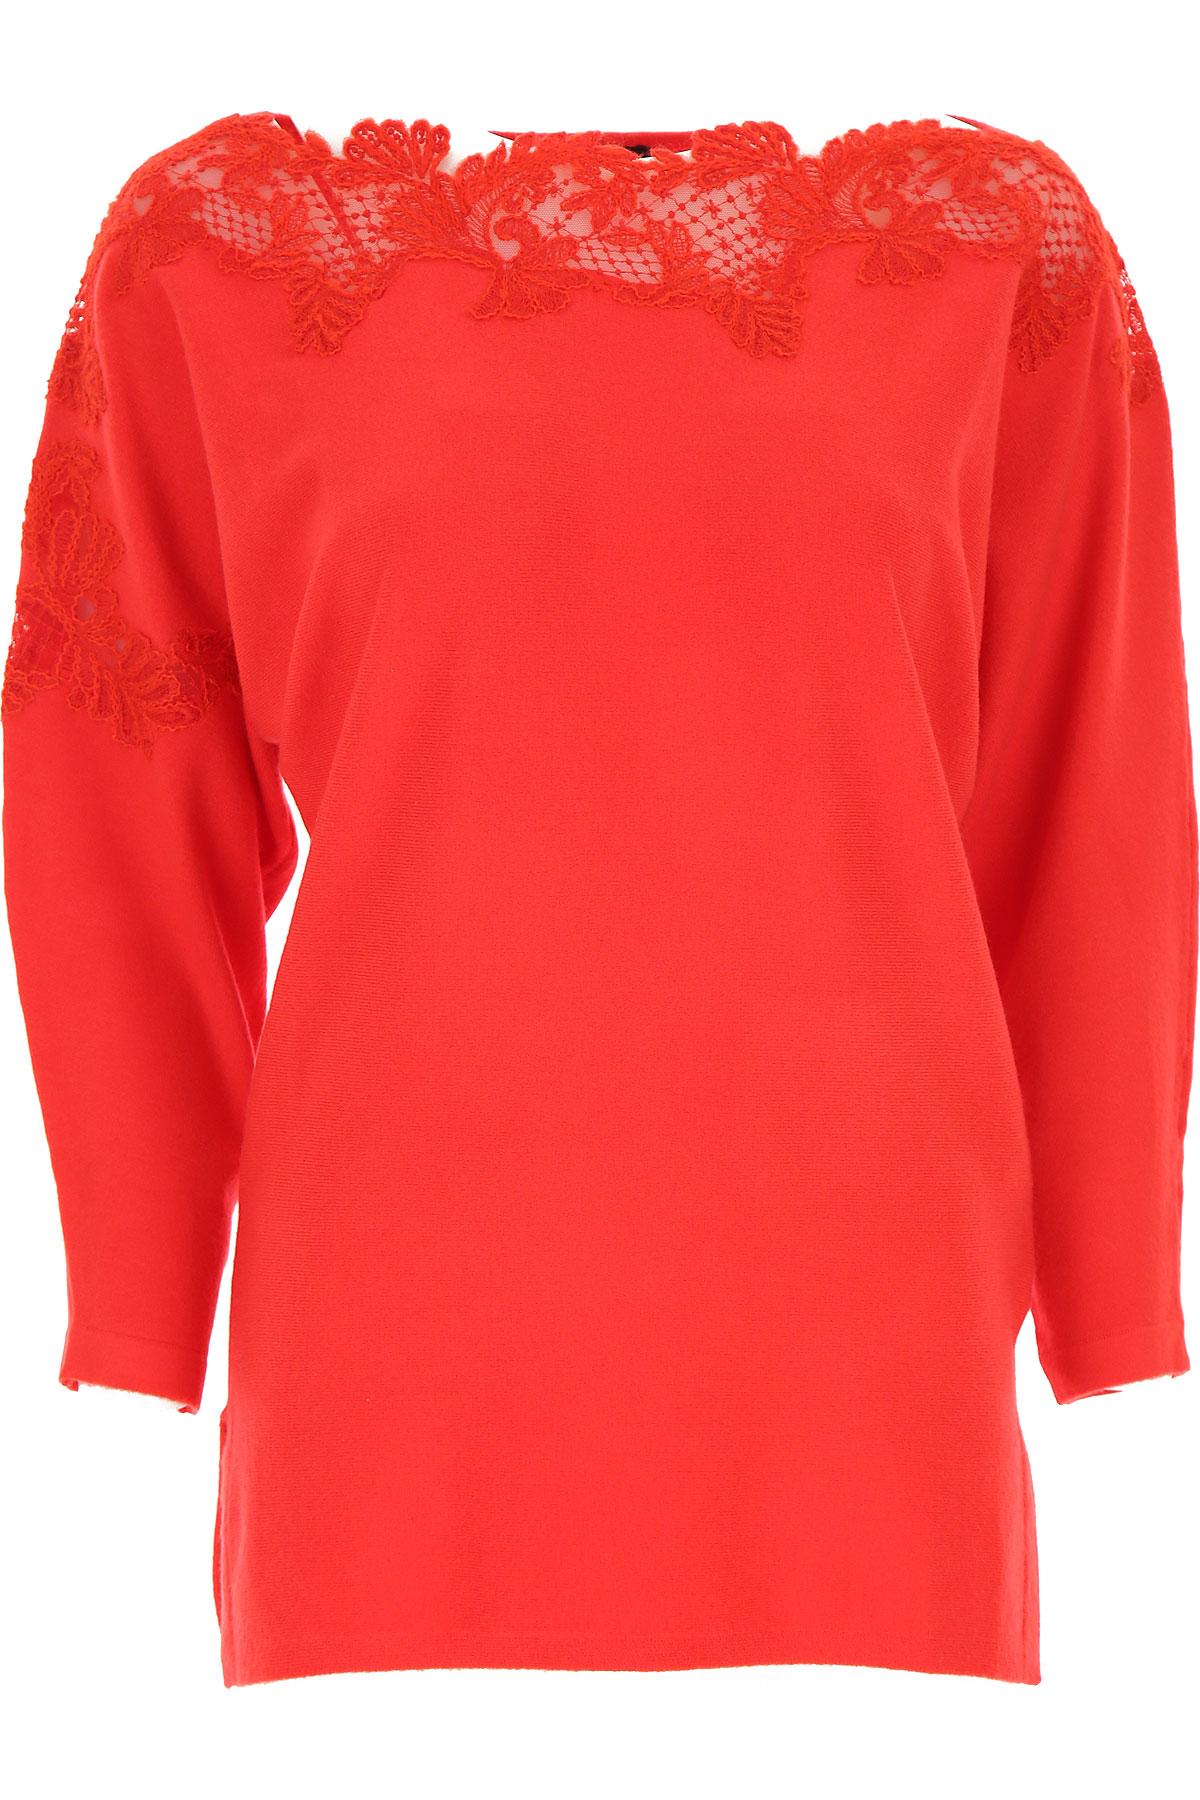 Ermanno Scervino Sweater for Women Jumper On Sale, Red, polyester, 2019, 4 6